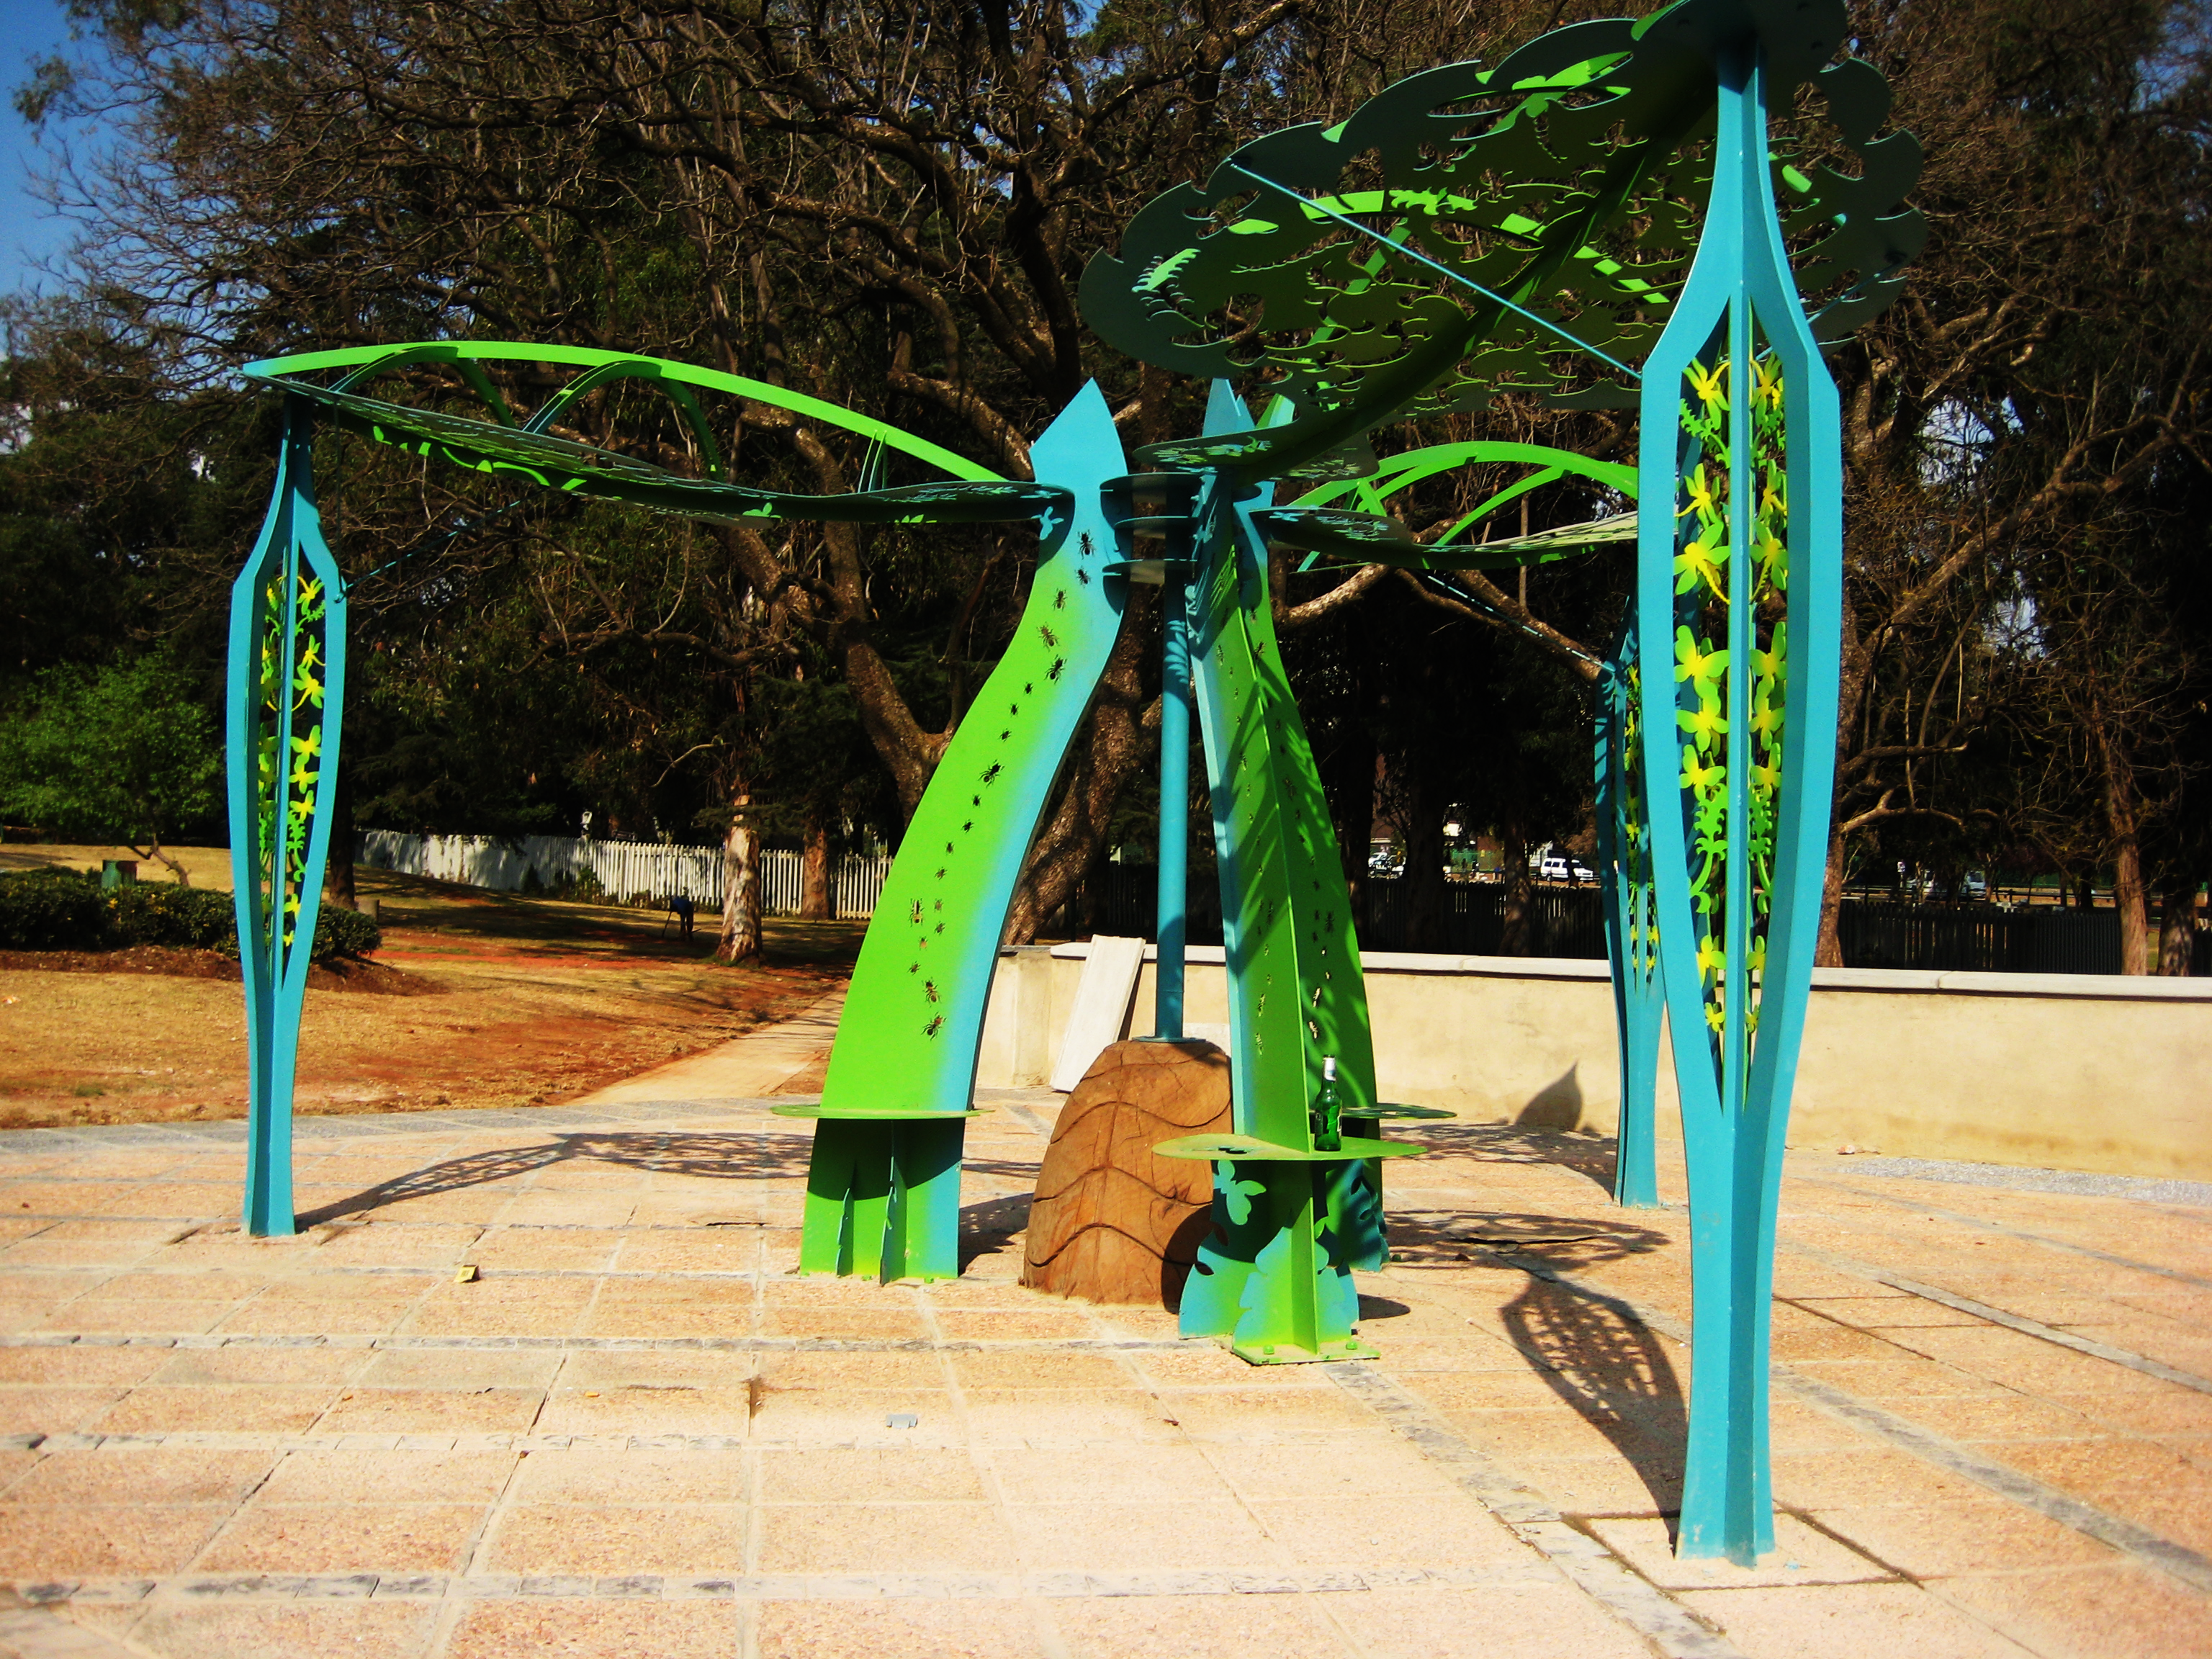 Tree sculpture in a playground